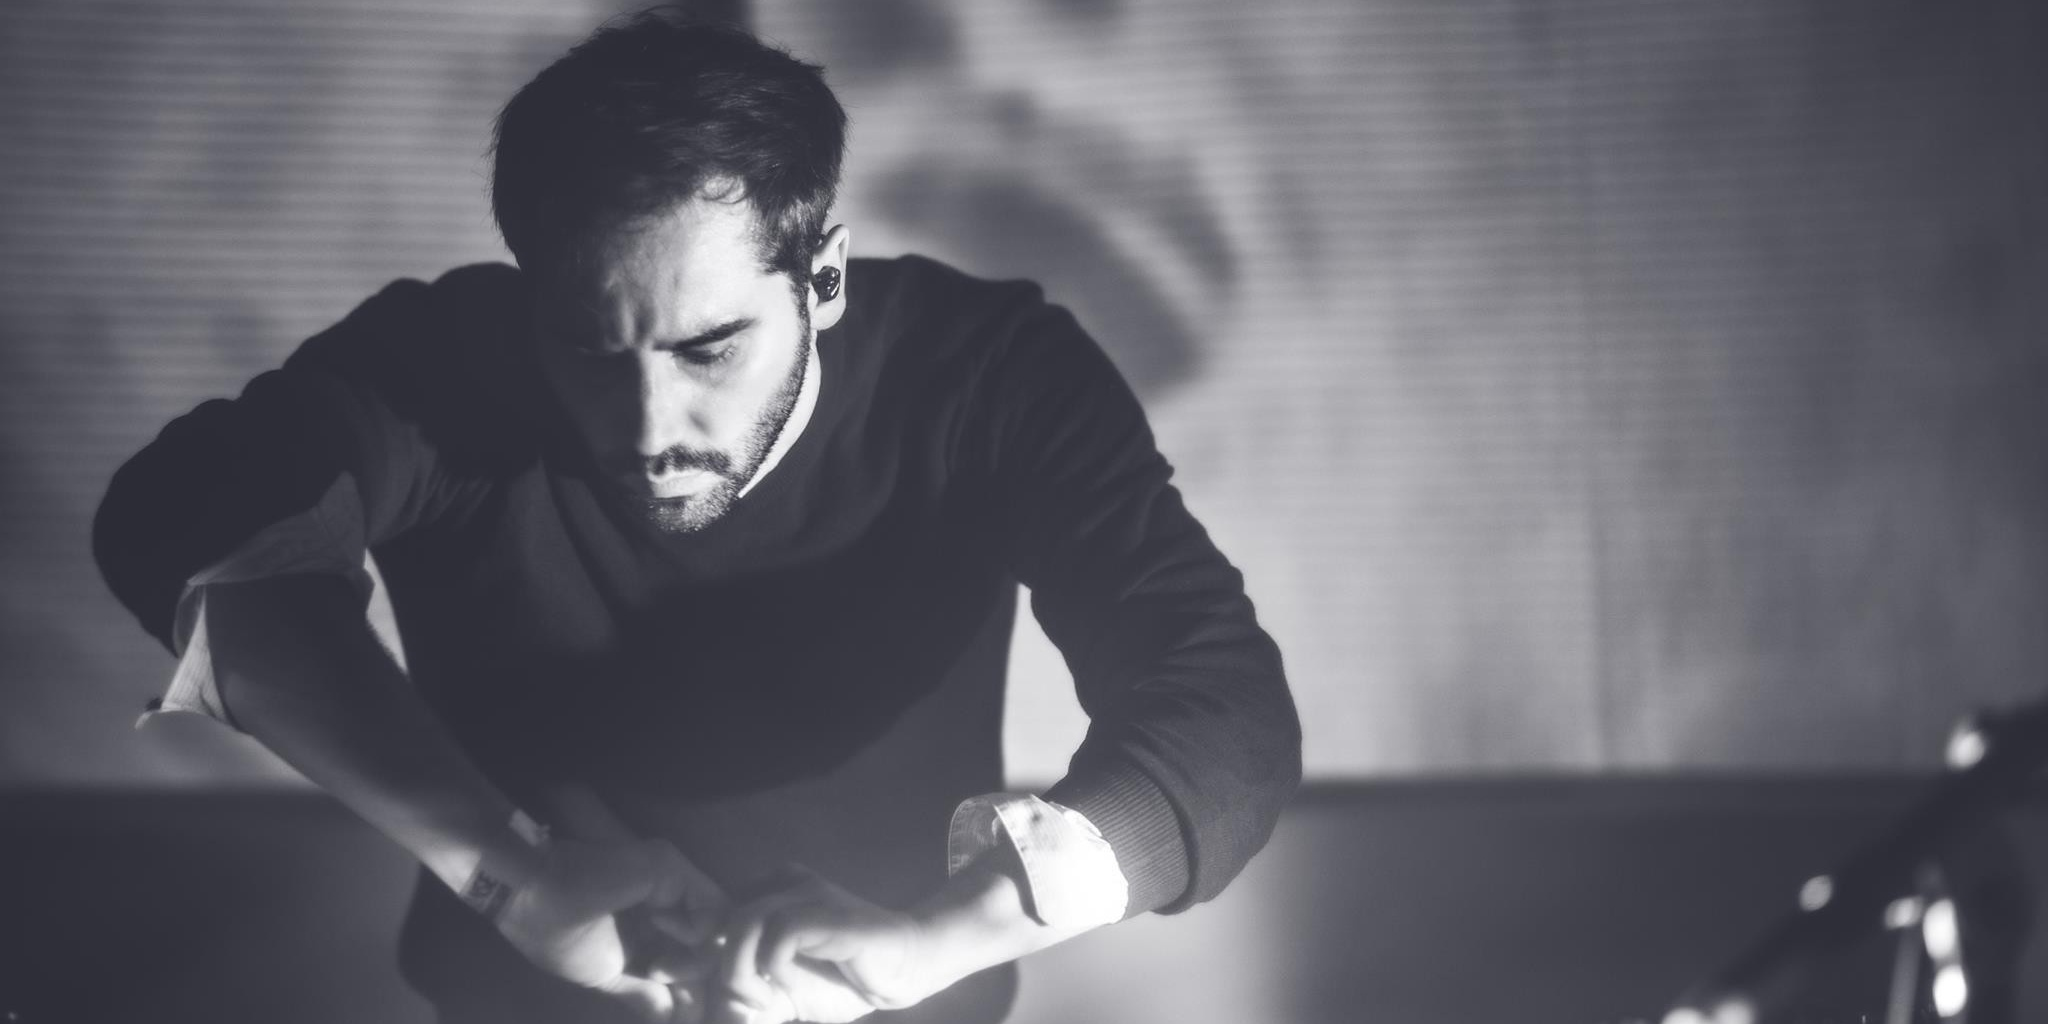 French electronic maestros Saycet and Anoraak take over Kult Kafe this April